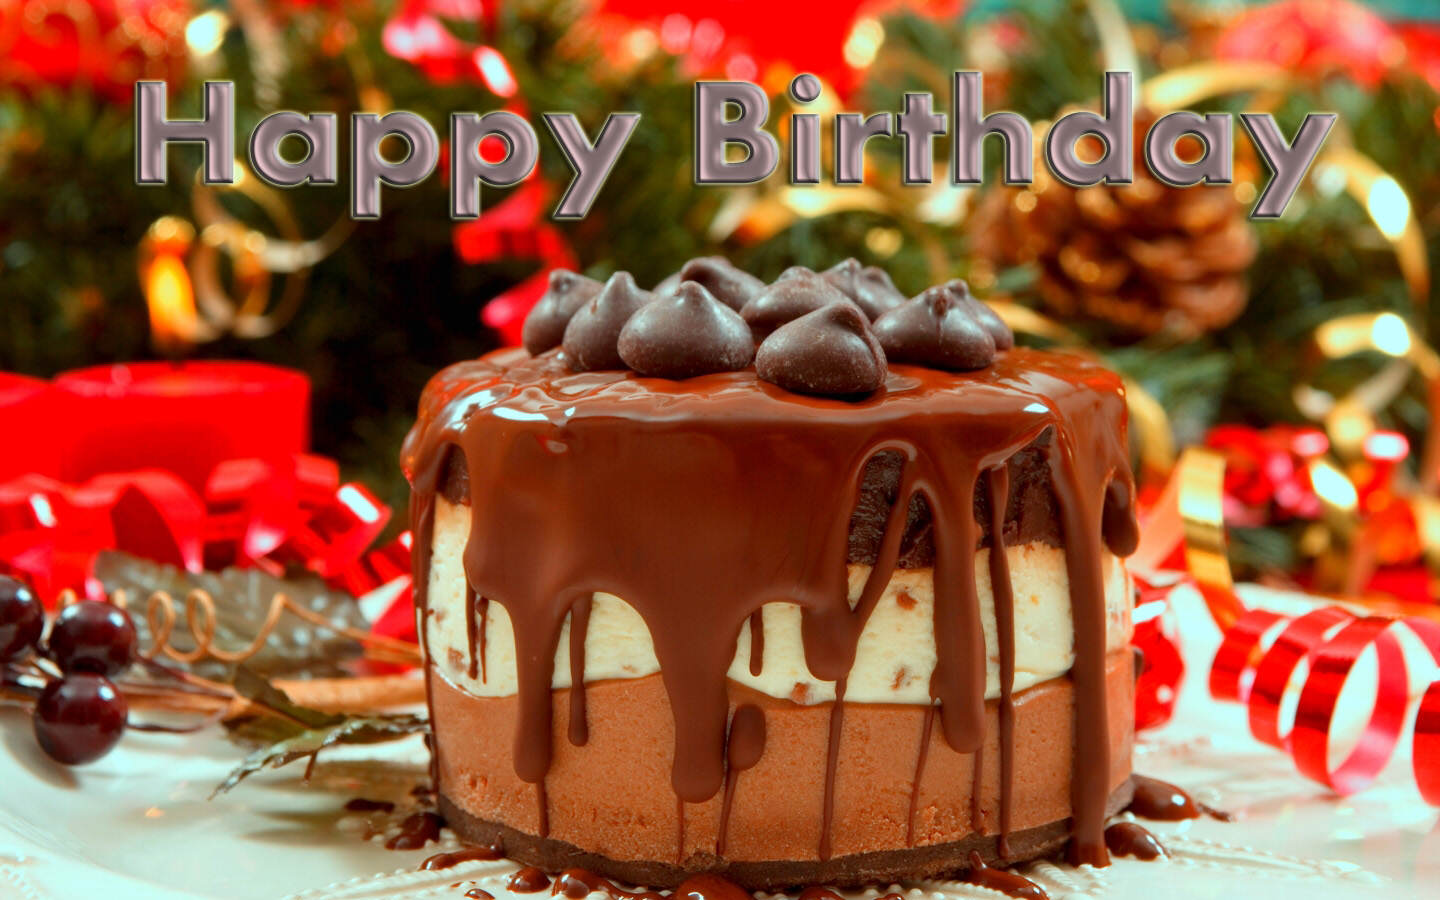 happy birthday wishes download images ; happy-birthday-wishes-cake--wallpapers-and-backgrounds-721